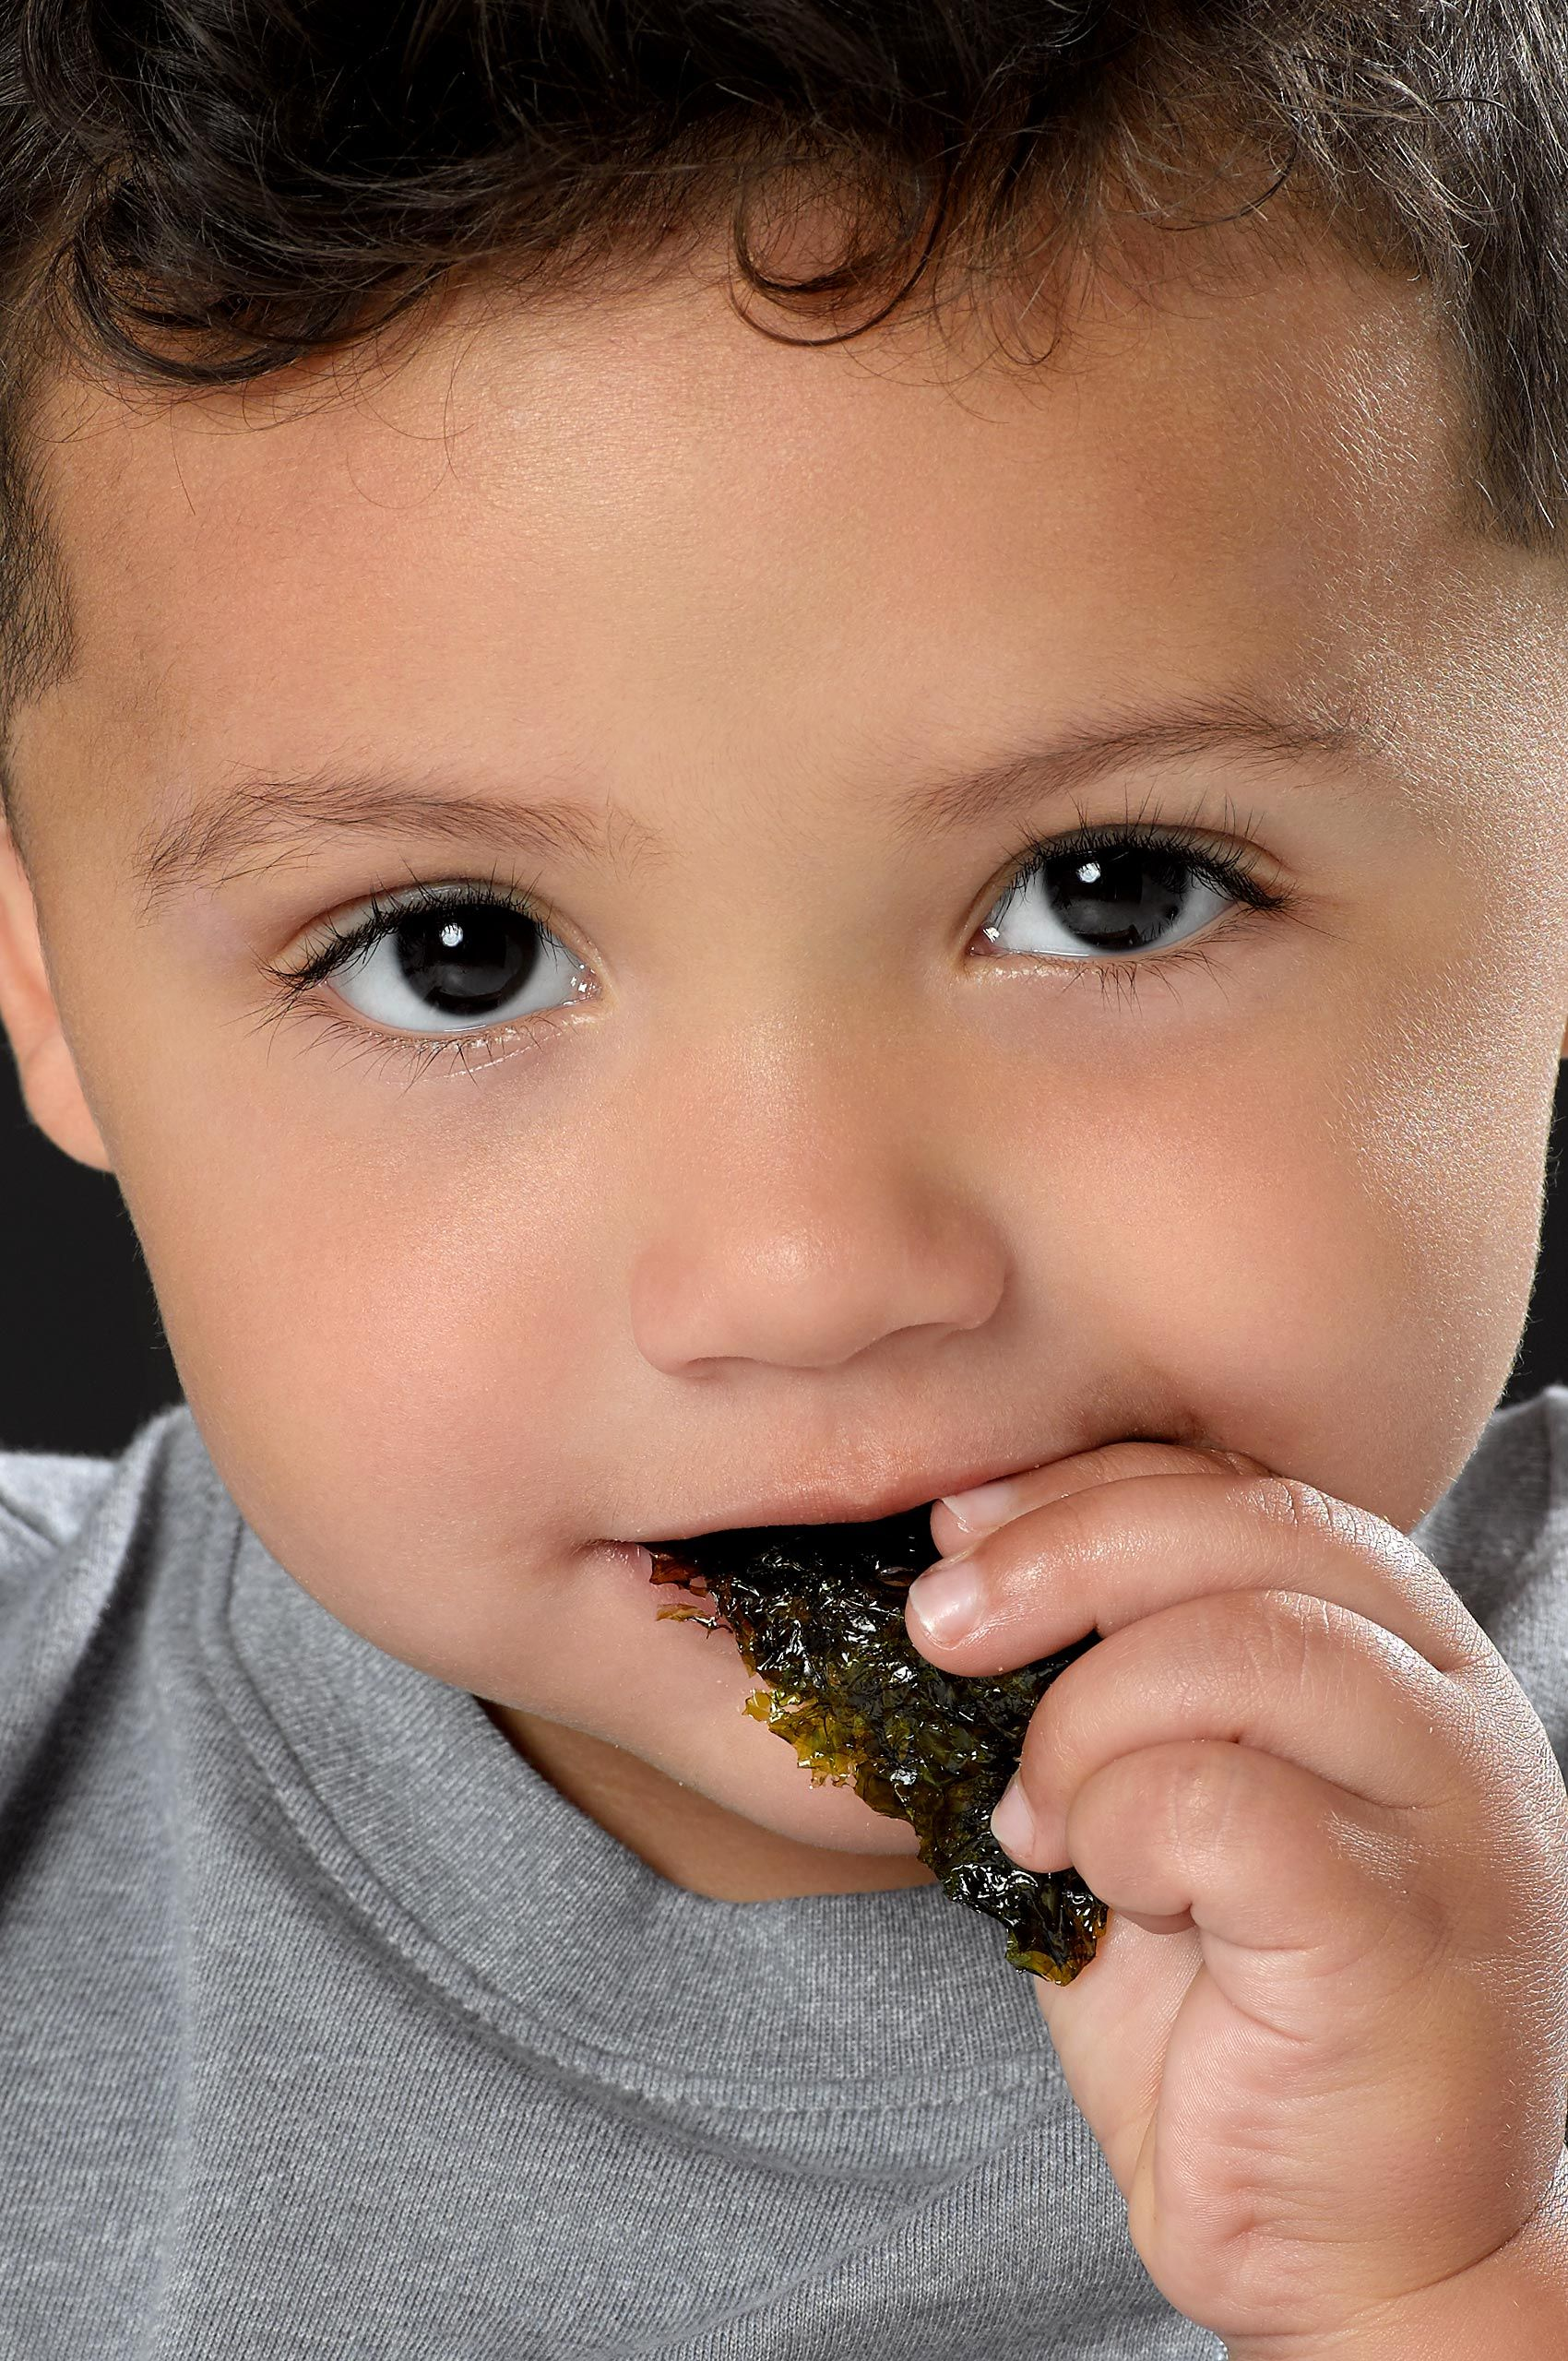 Young boy eating seaweed